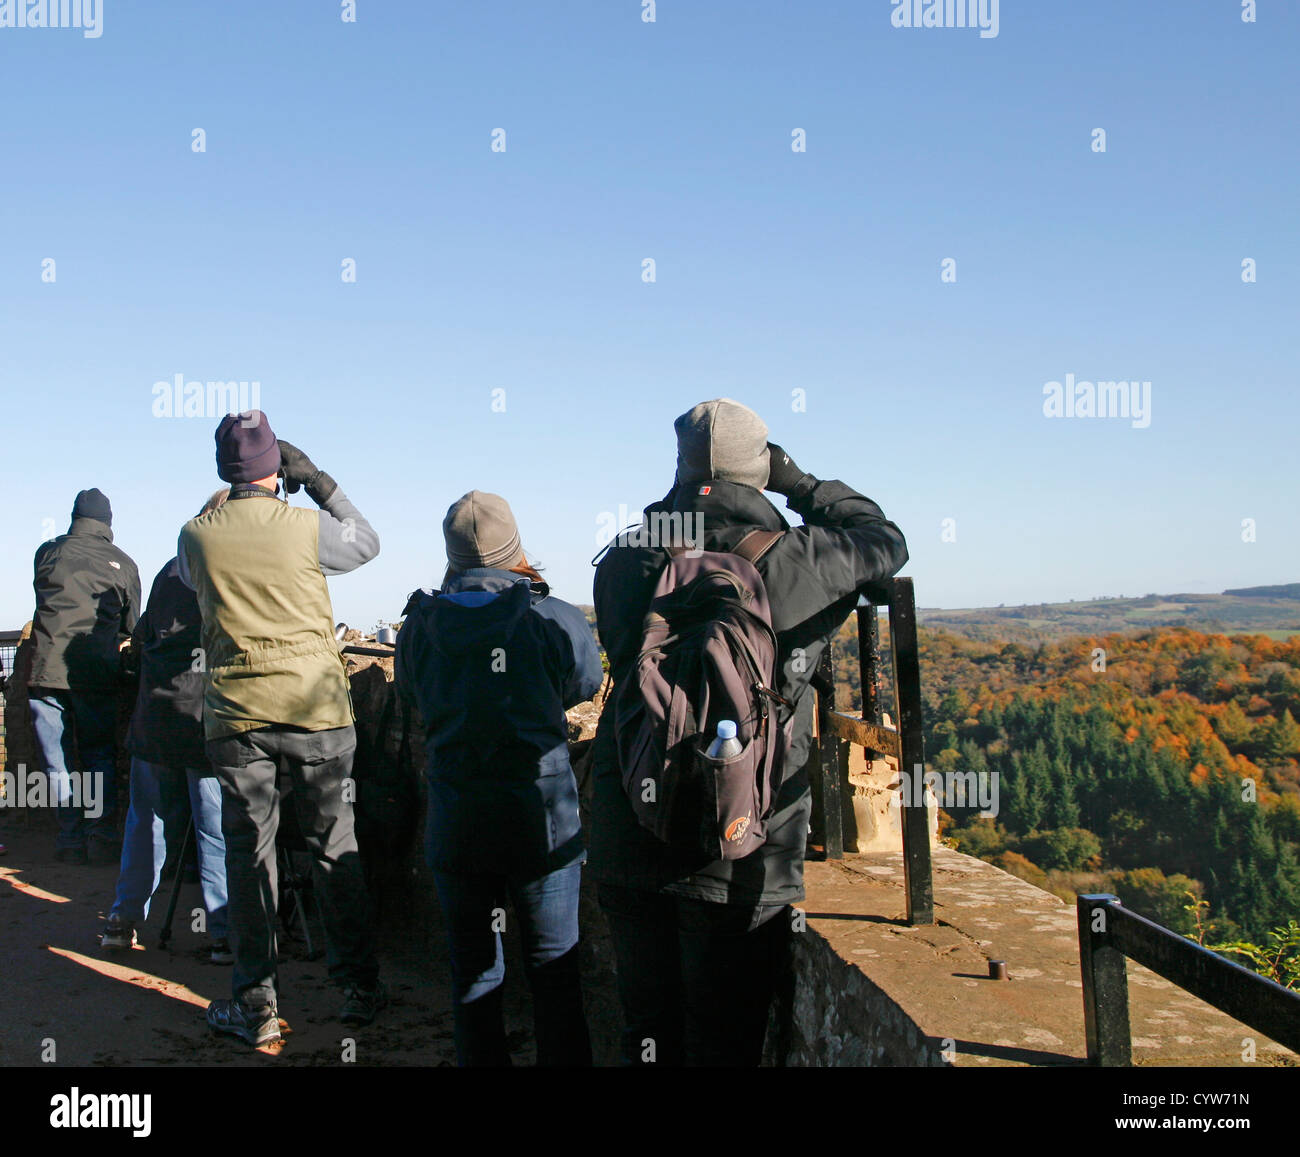 Visitors at Symonds Yat Rock viewpoint Forest of Dean Gloucestershire England UK - Stock Image